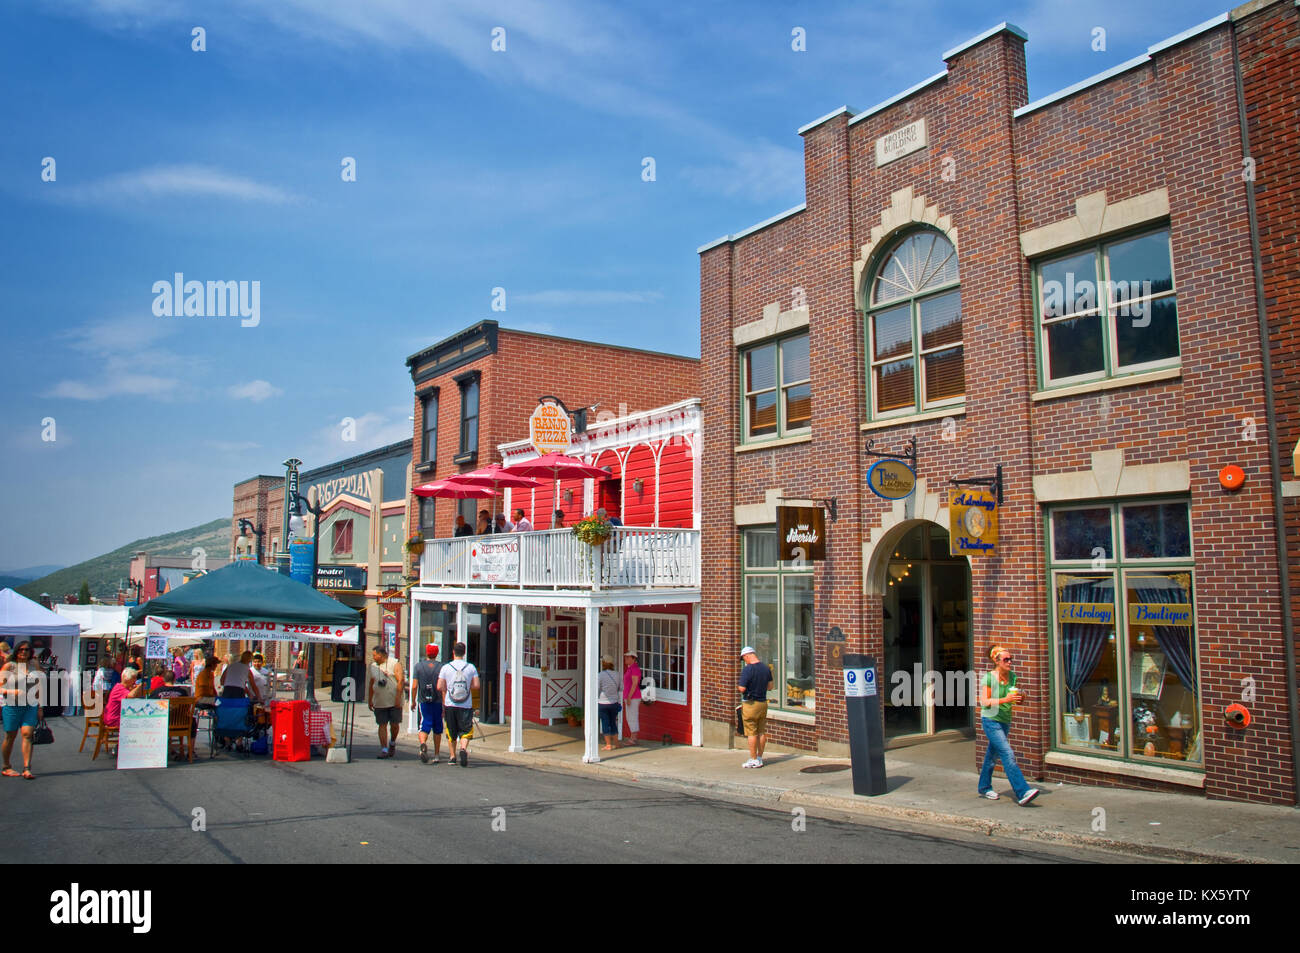 PARK CITY, UTAH - AUGUST 08: Tourists in the main street of Park City in summer, in Park City on August 08, 2012. - Stock Image